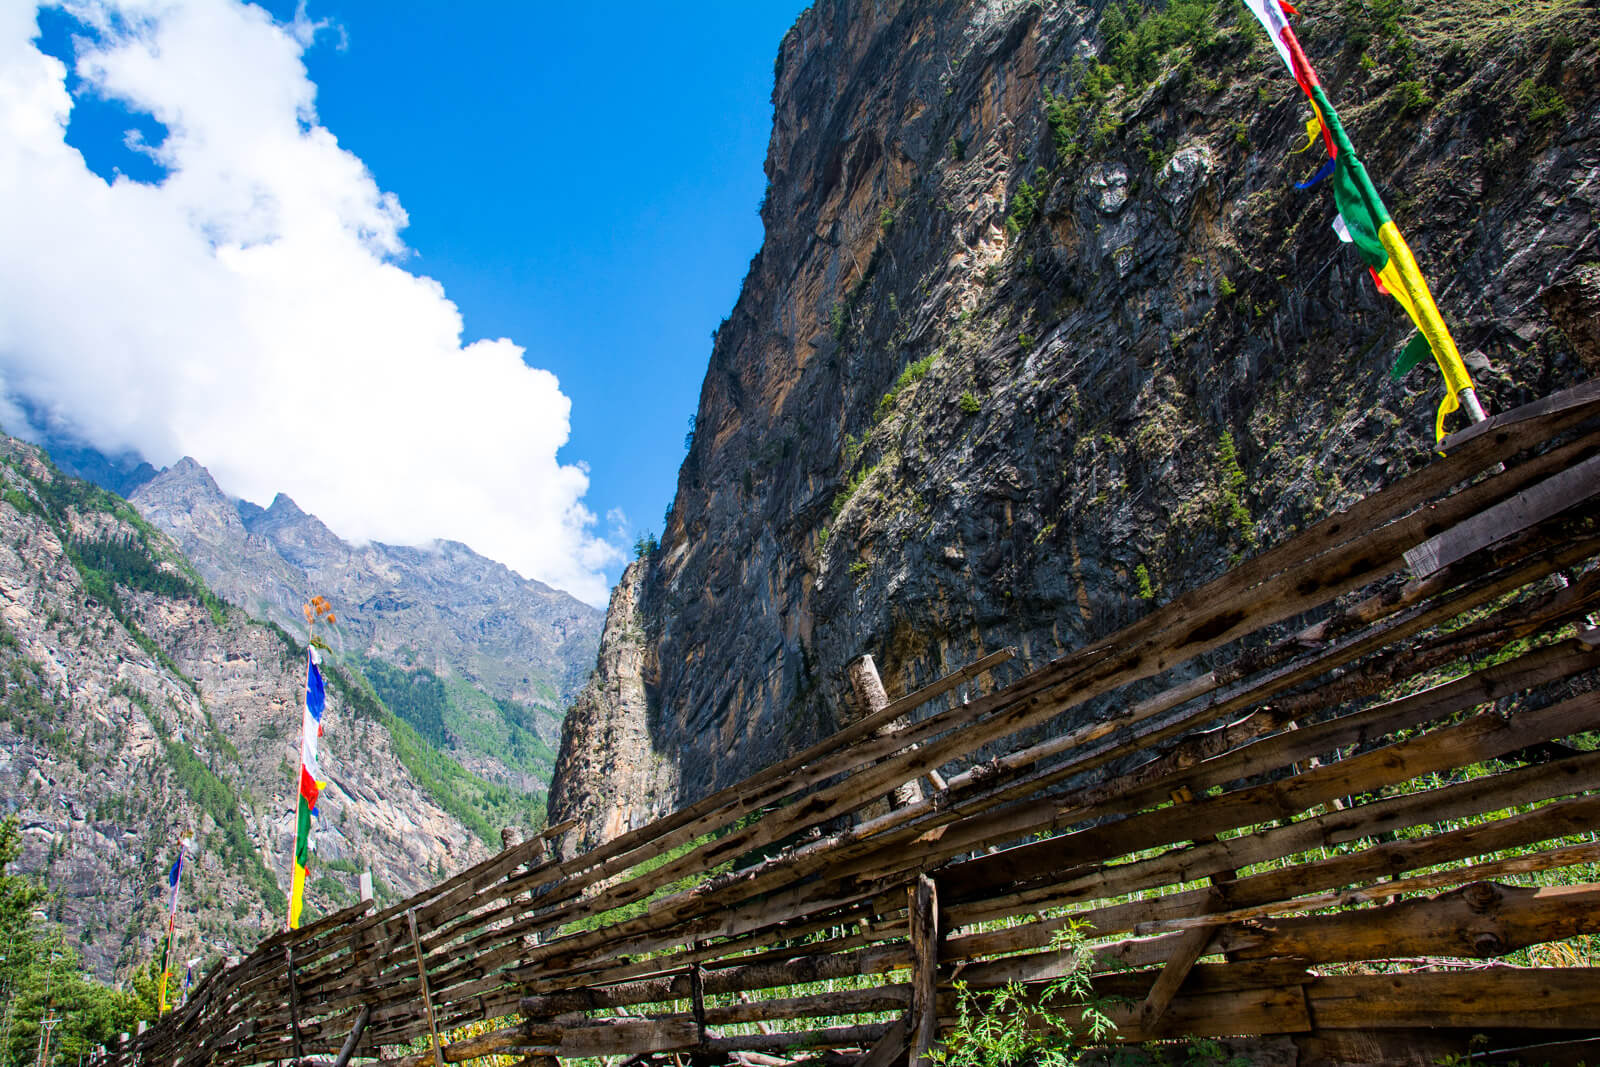 Feeling the Tibetean Spirituality in the Annapurna Circuit Trek